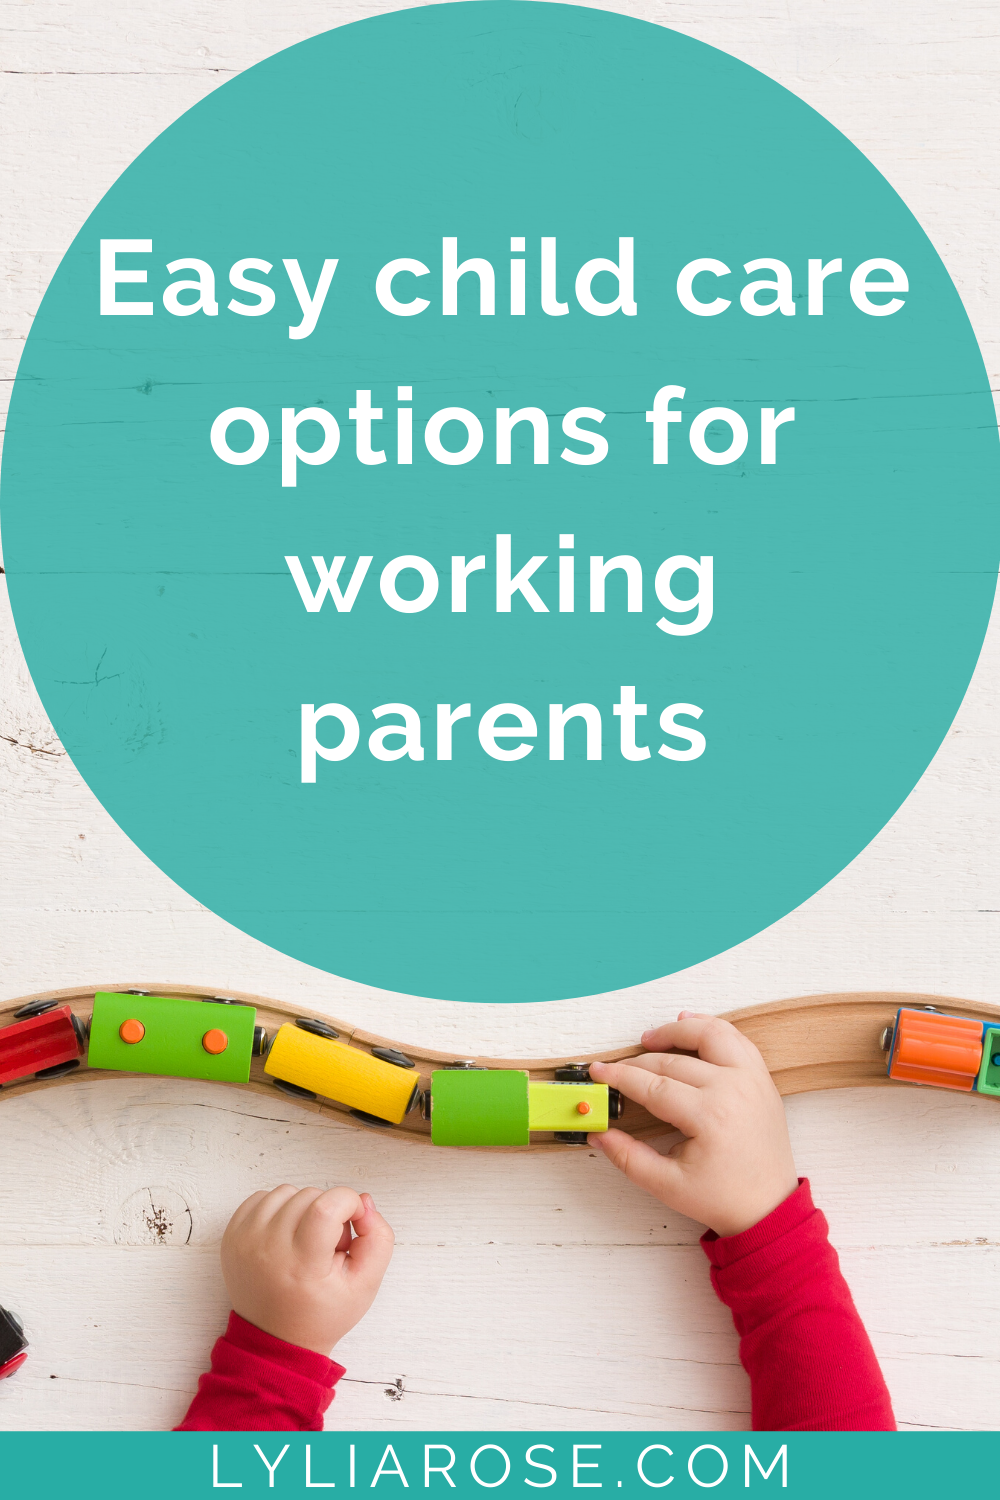 Easy child care options for working parents